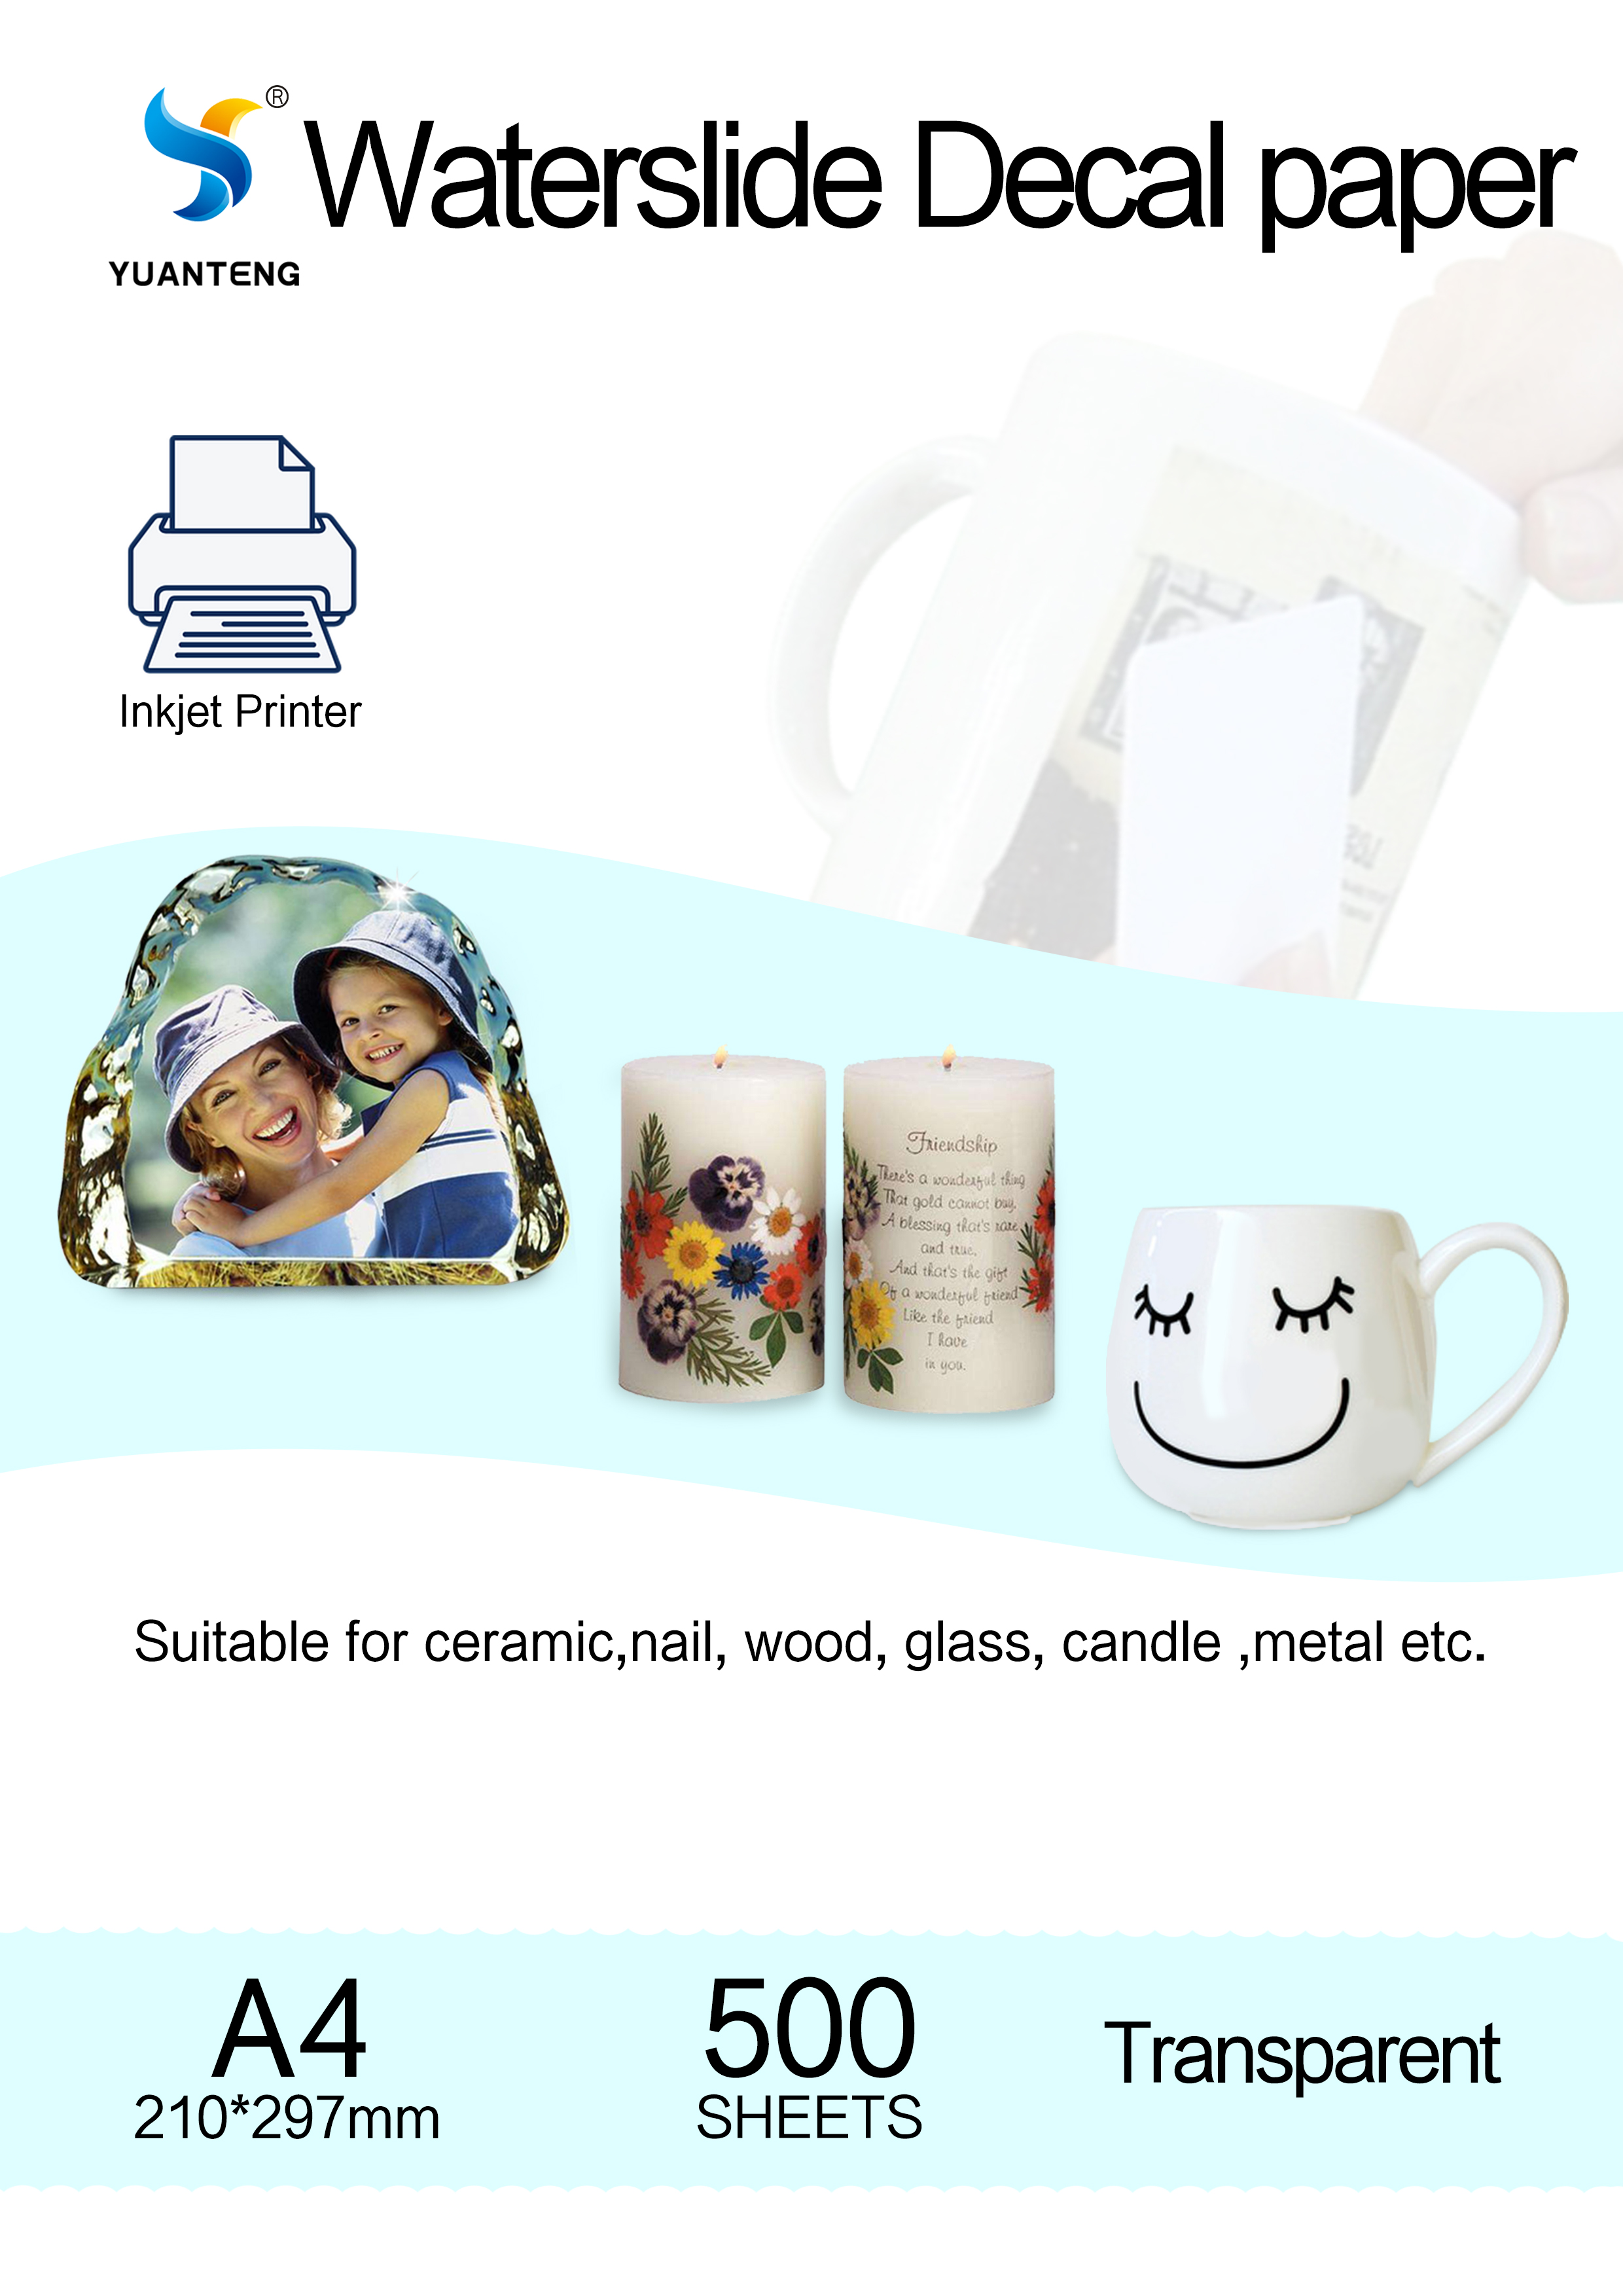 Inkjet Water Decal Paper With Transparent Color A4 Size 500sheets For VIP Customer